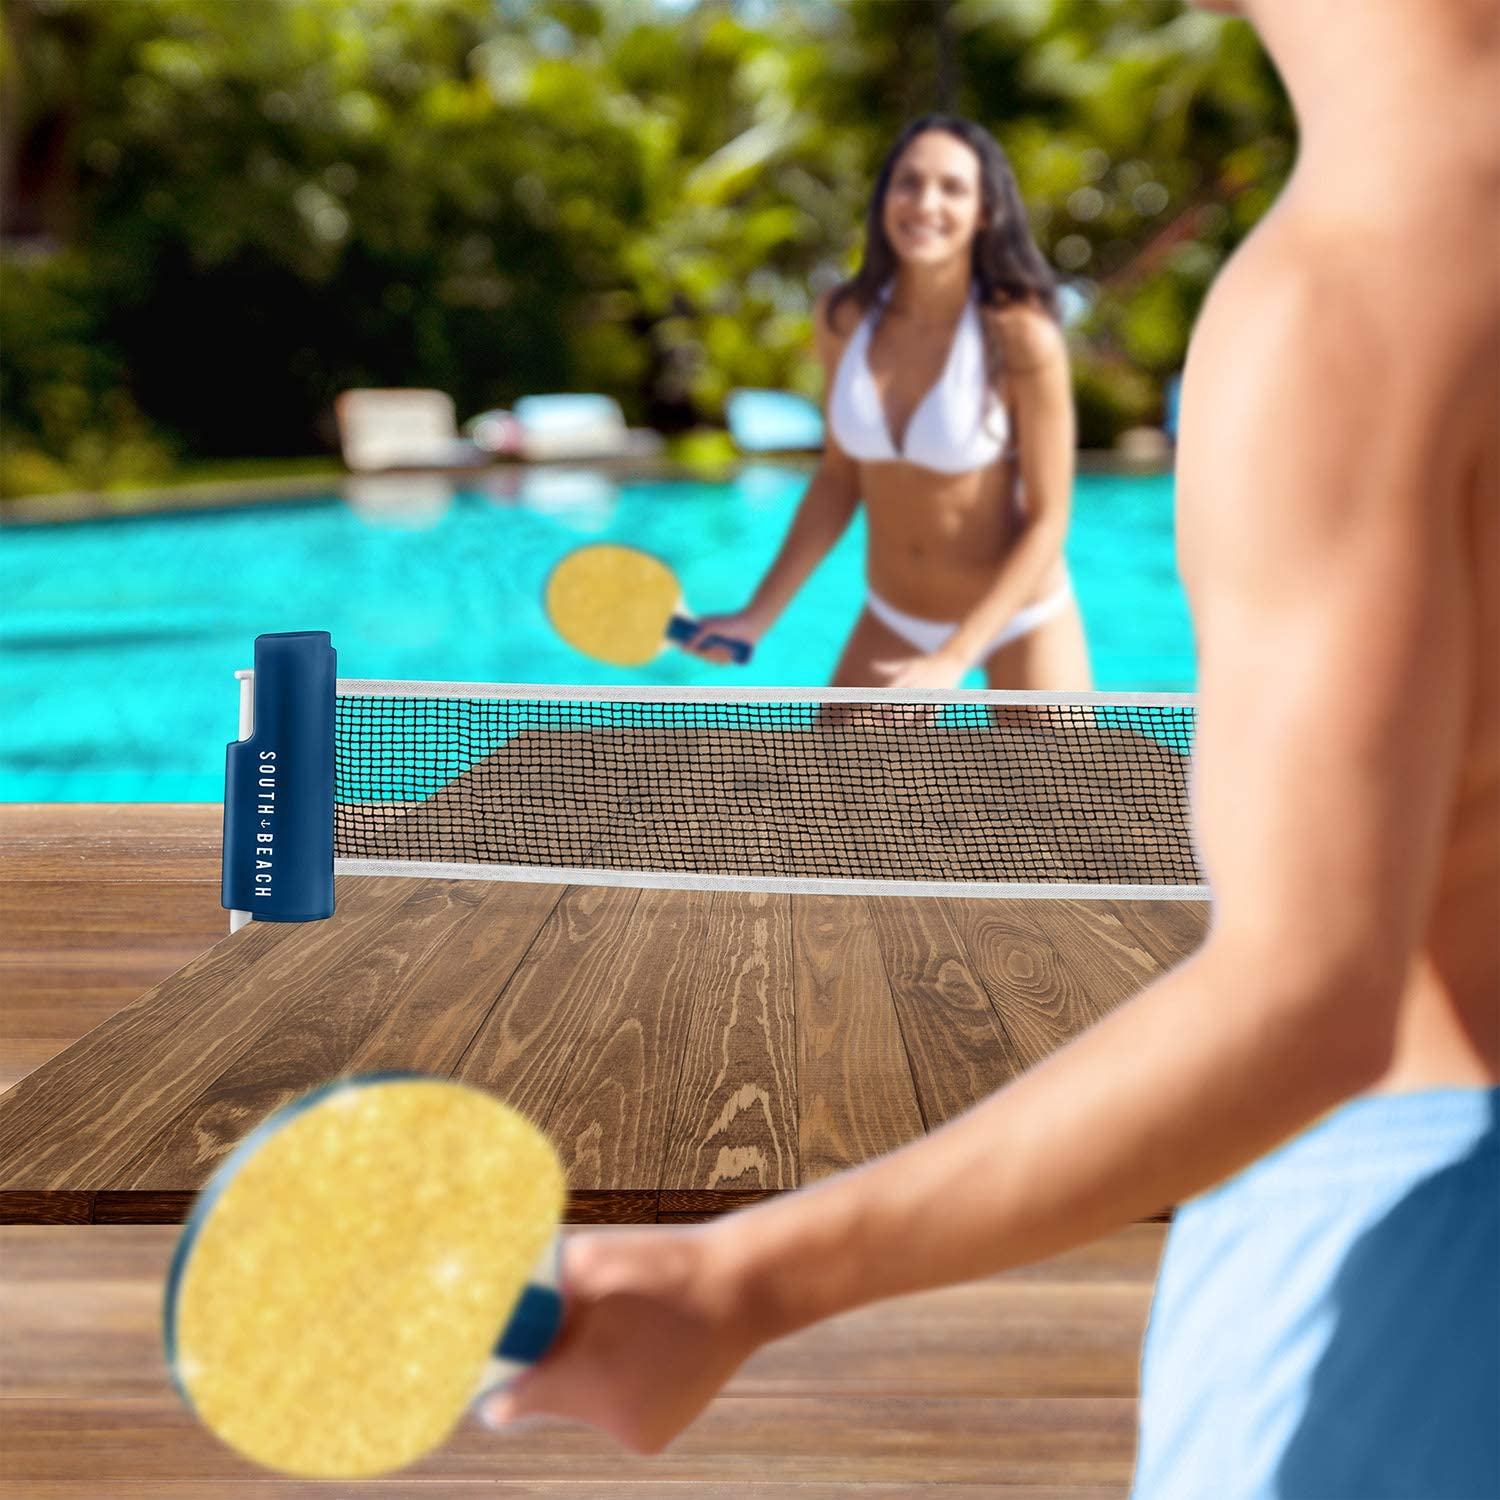 3 Ping Pong Balls Portable and Attaches to Most Tables South Beach Table Tennis Set Includes Retractable Net with Clamps /& 2 Paddles